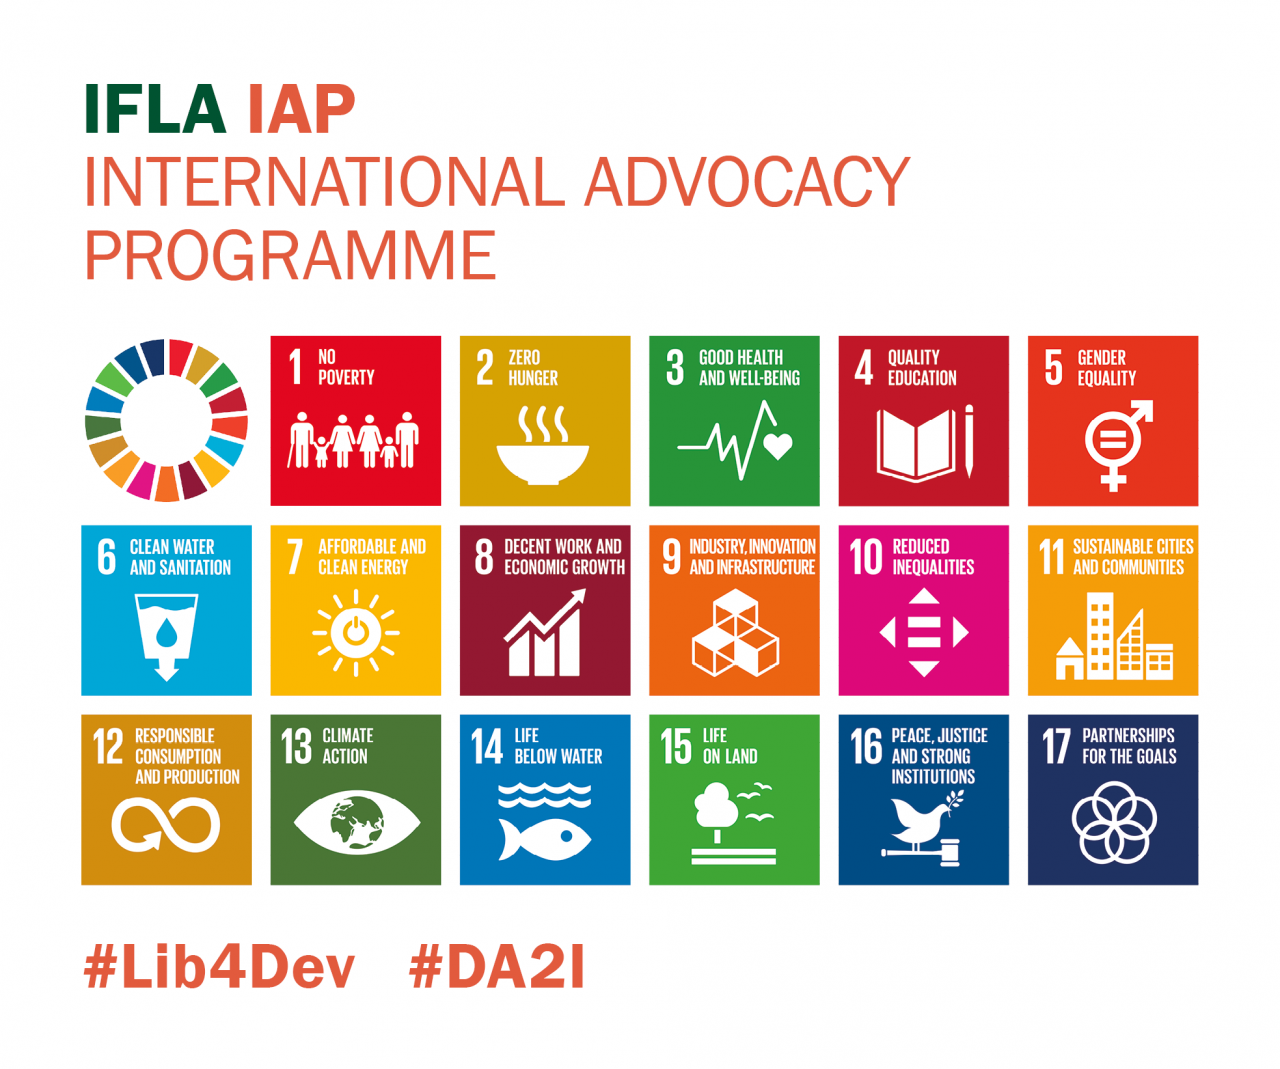 IFLA International Advocacy Programme (IAP)